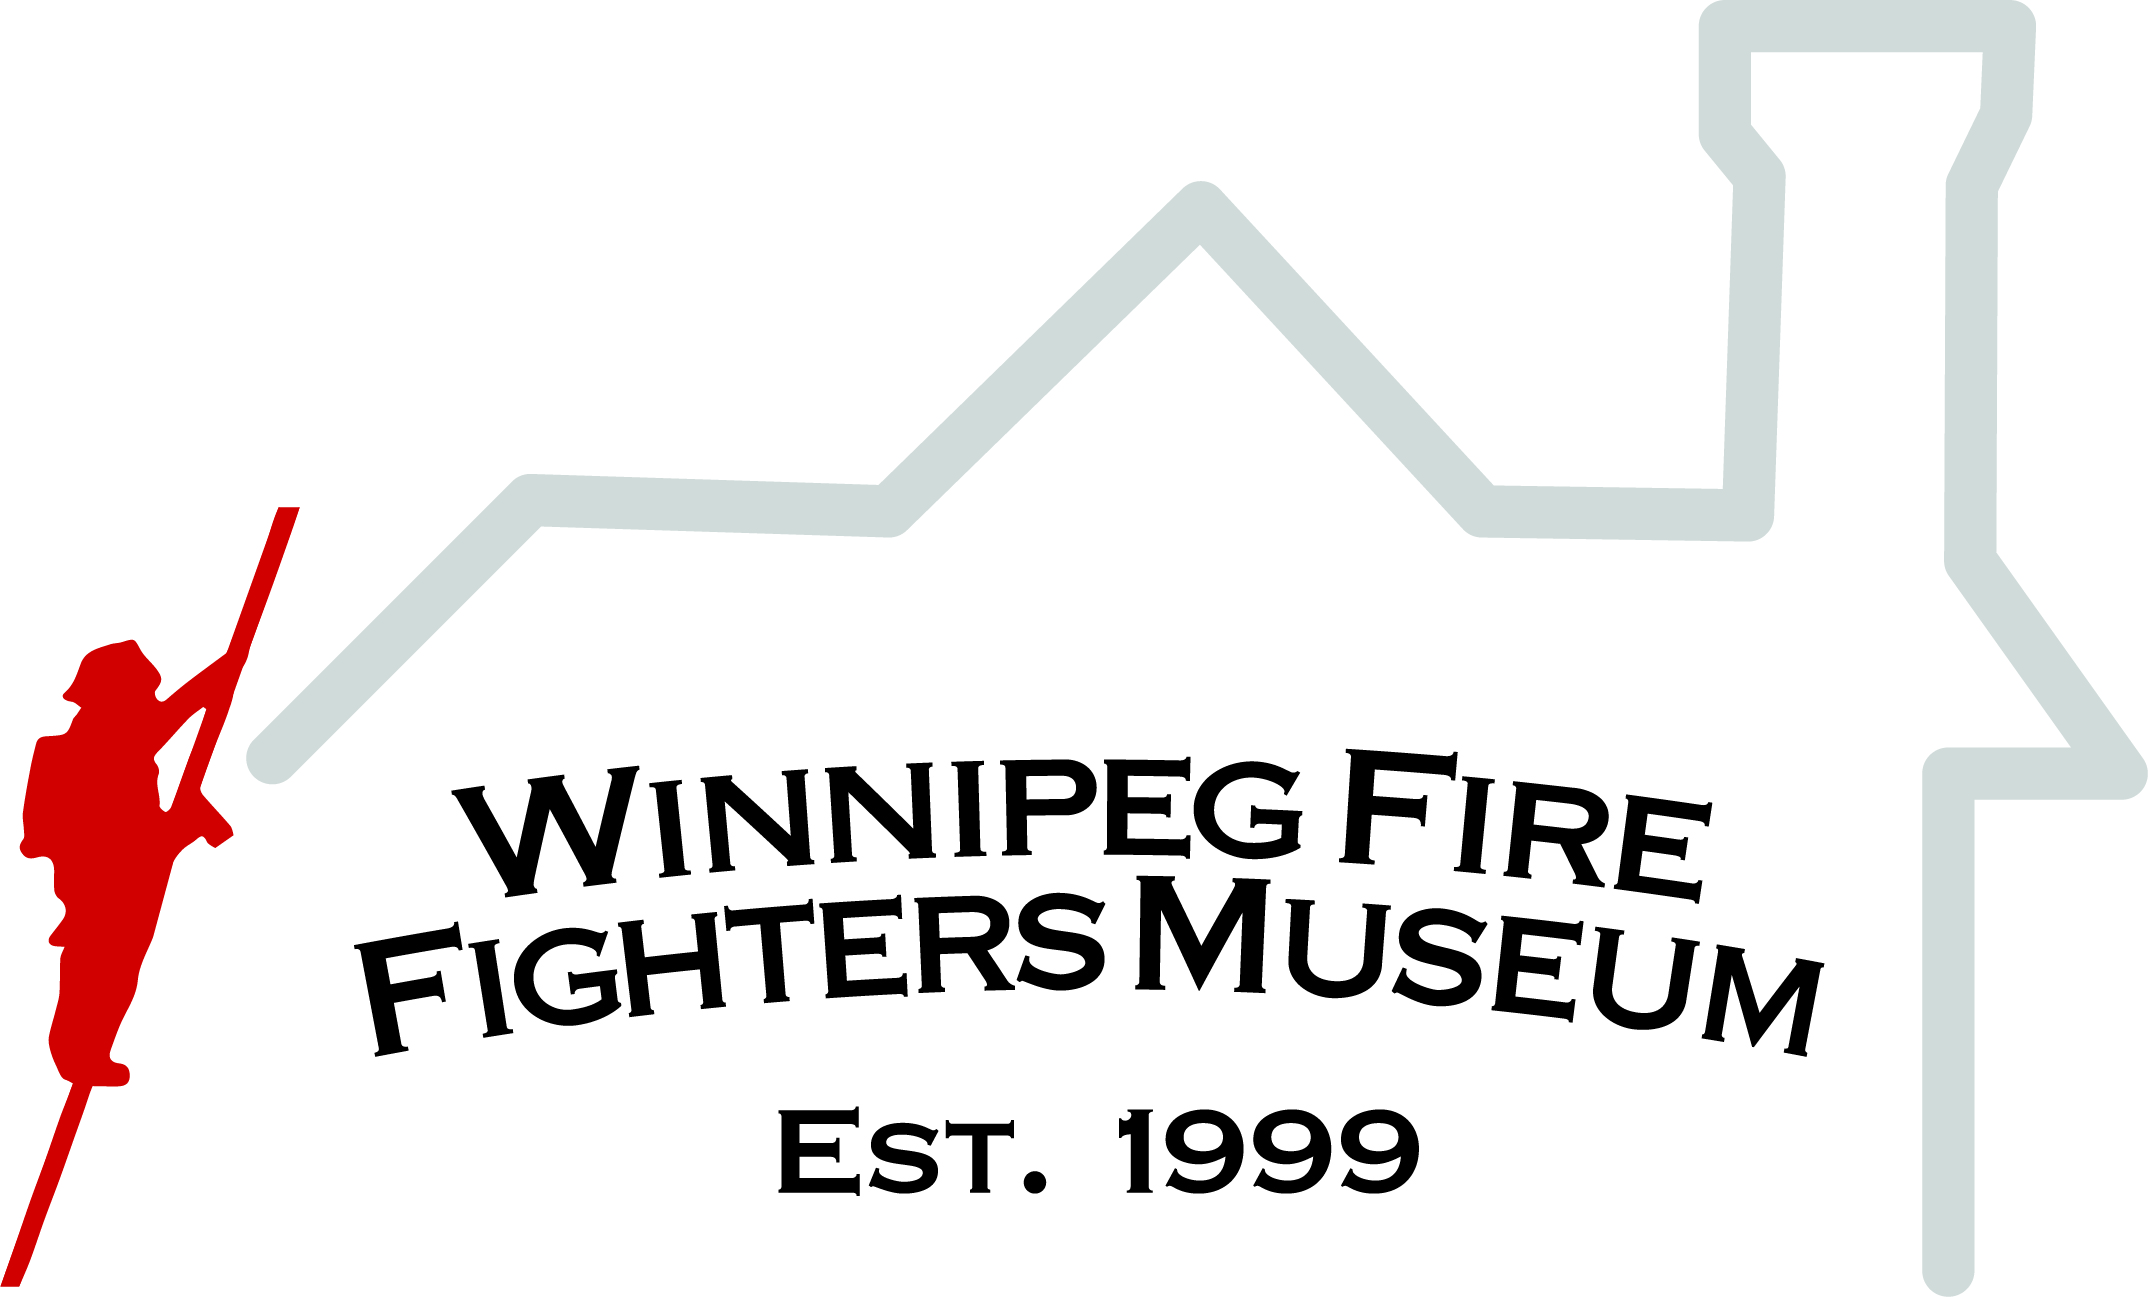 Winnipeg Fire Fighters Museum